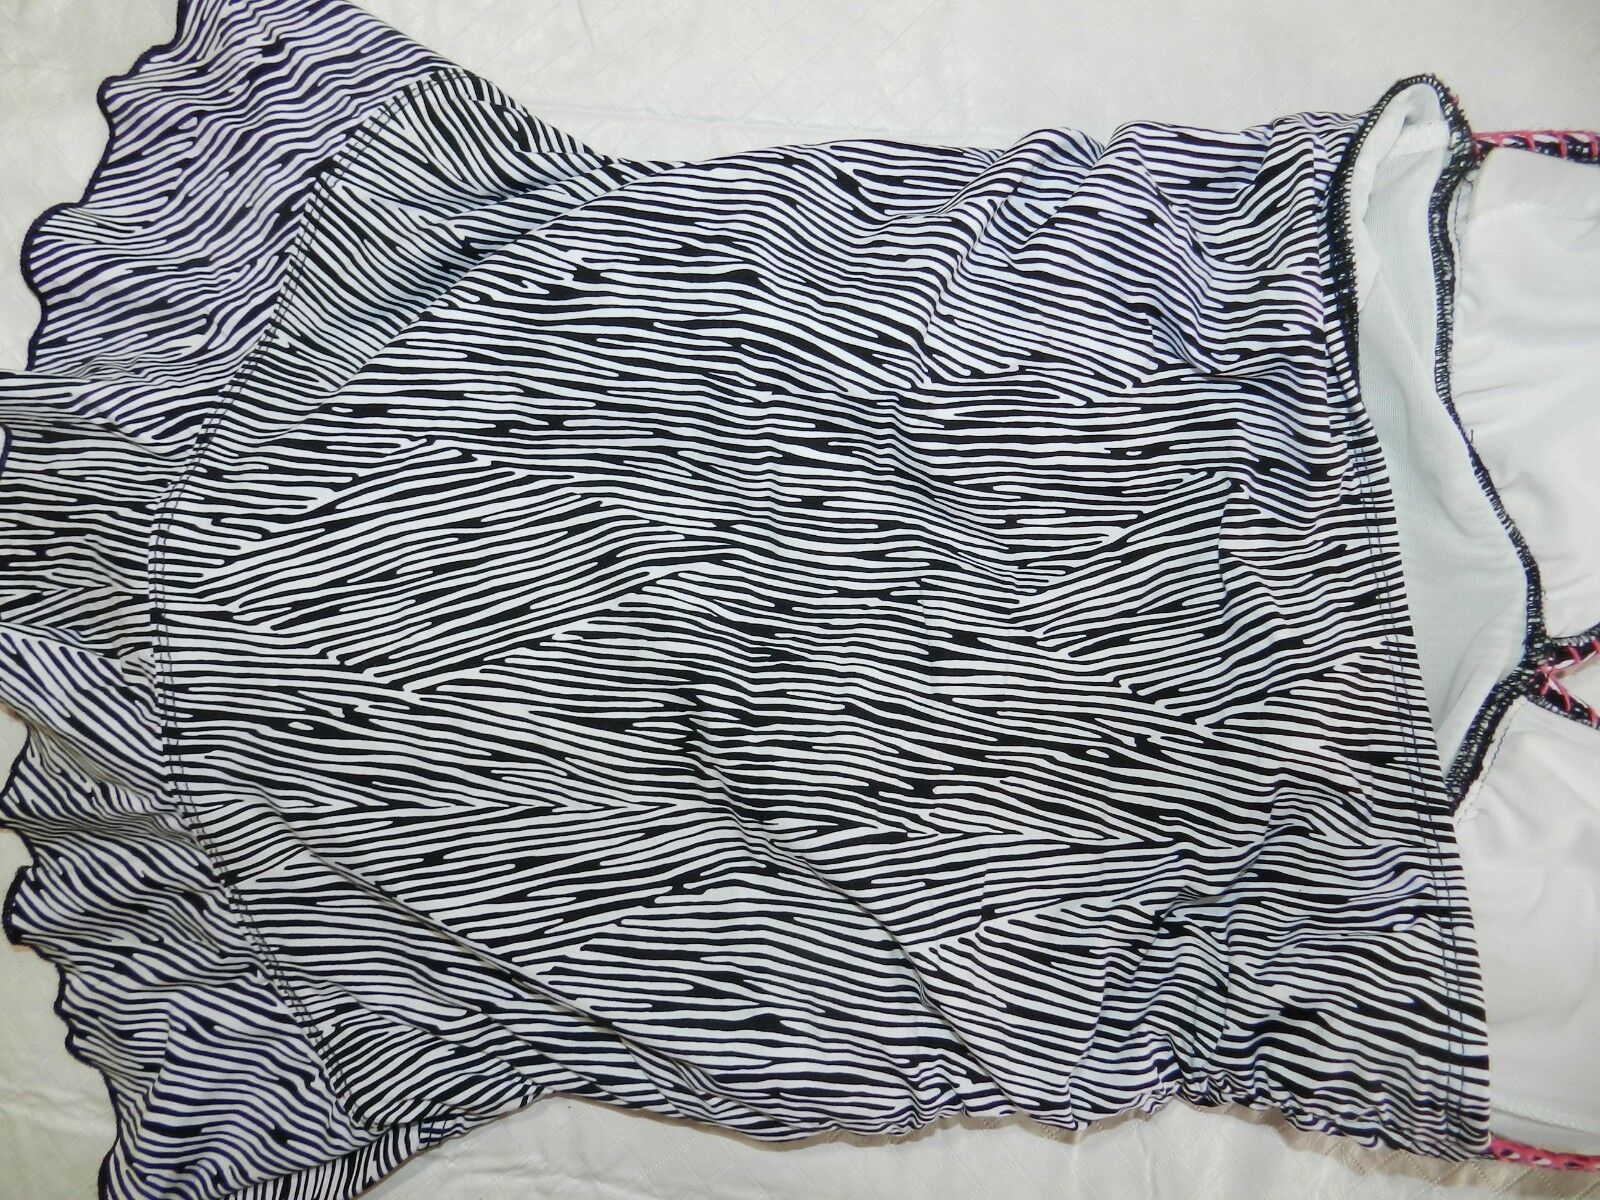 WOMENS WOMENS WOMENS NAVY & WHITE SWIMDRESS = KENNETH COLE REACTION = SIZE SMALL - ss23 aecba1